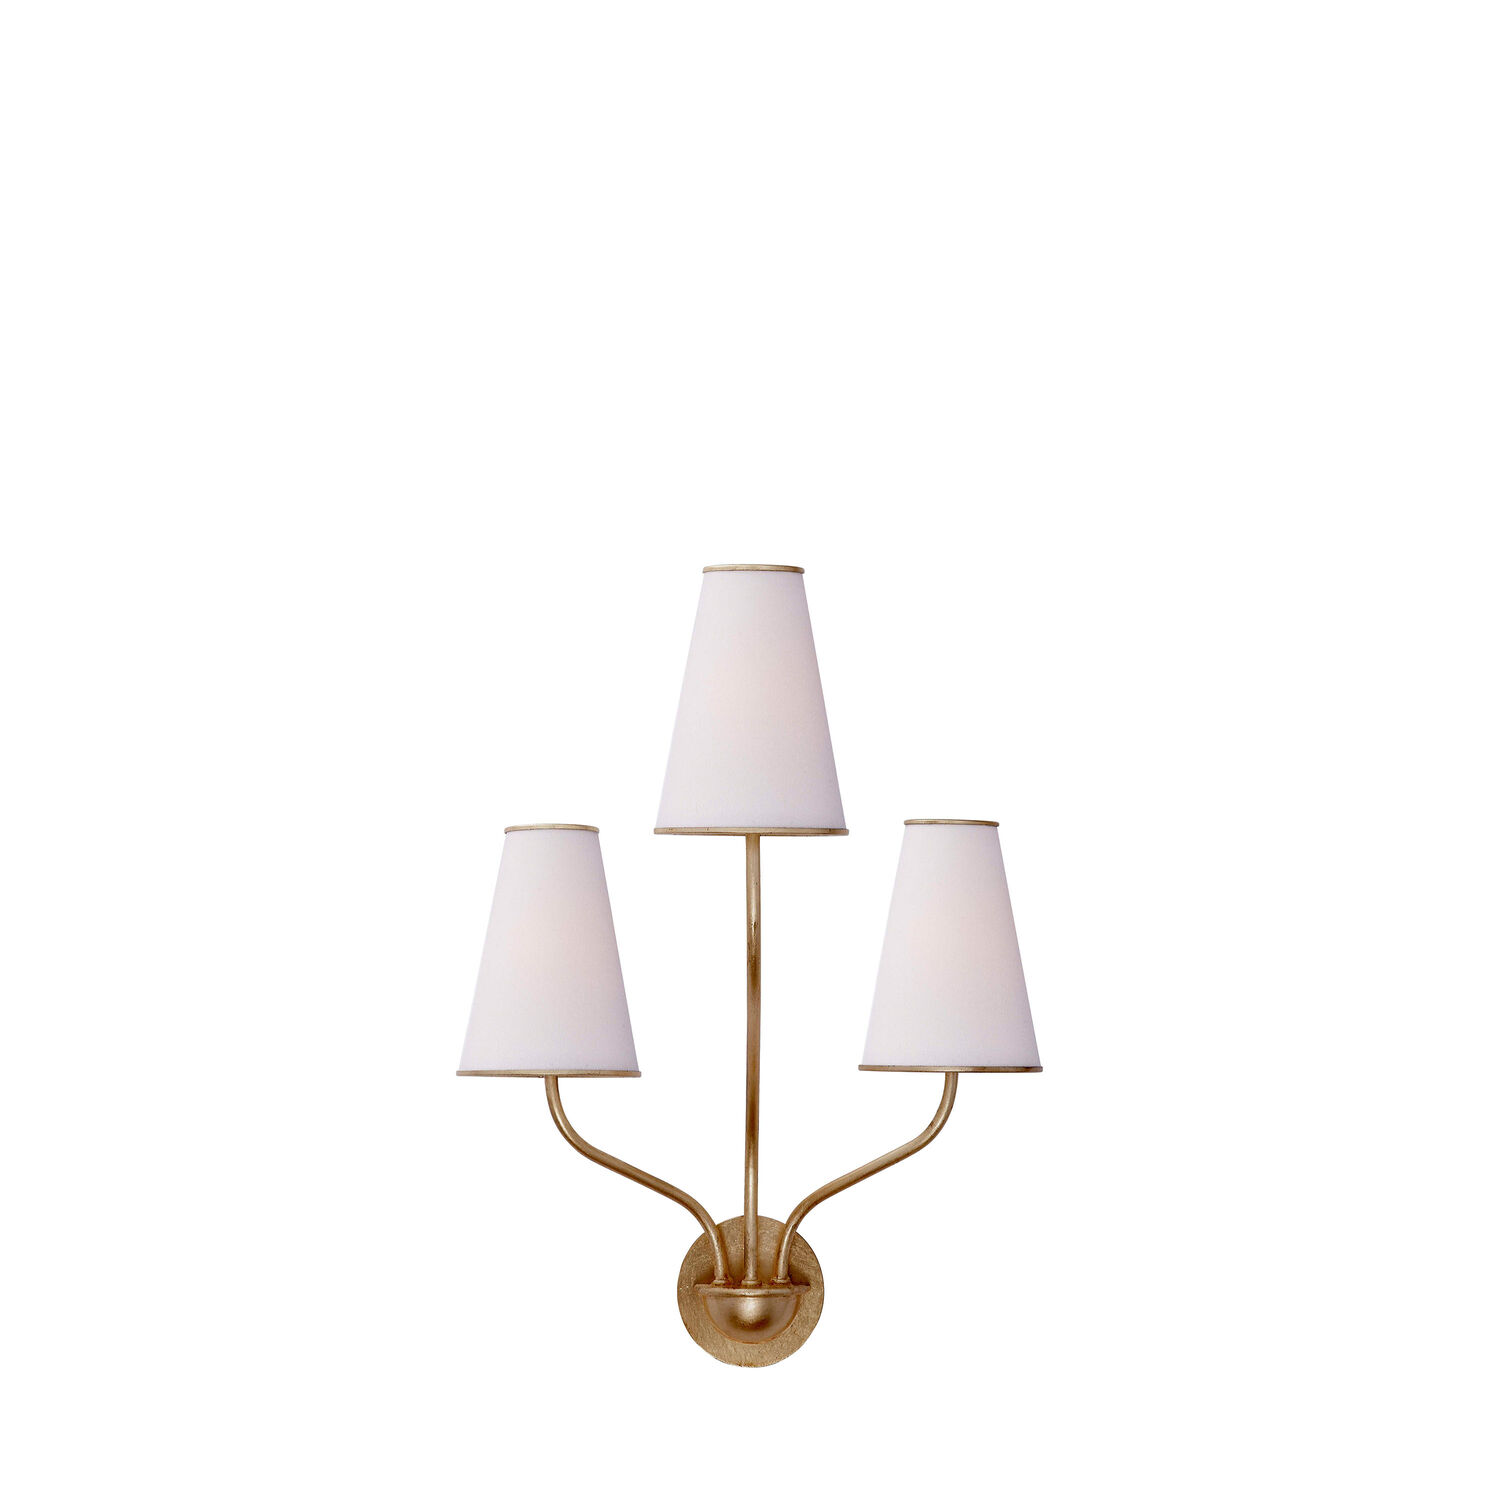 Montreul Small Wall Sconce